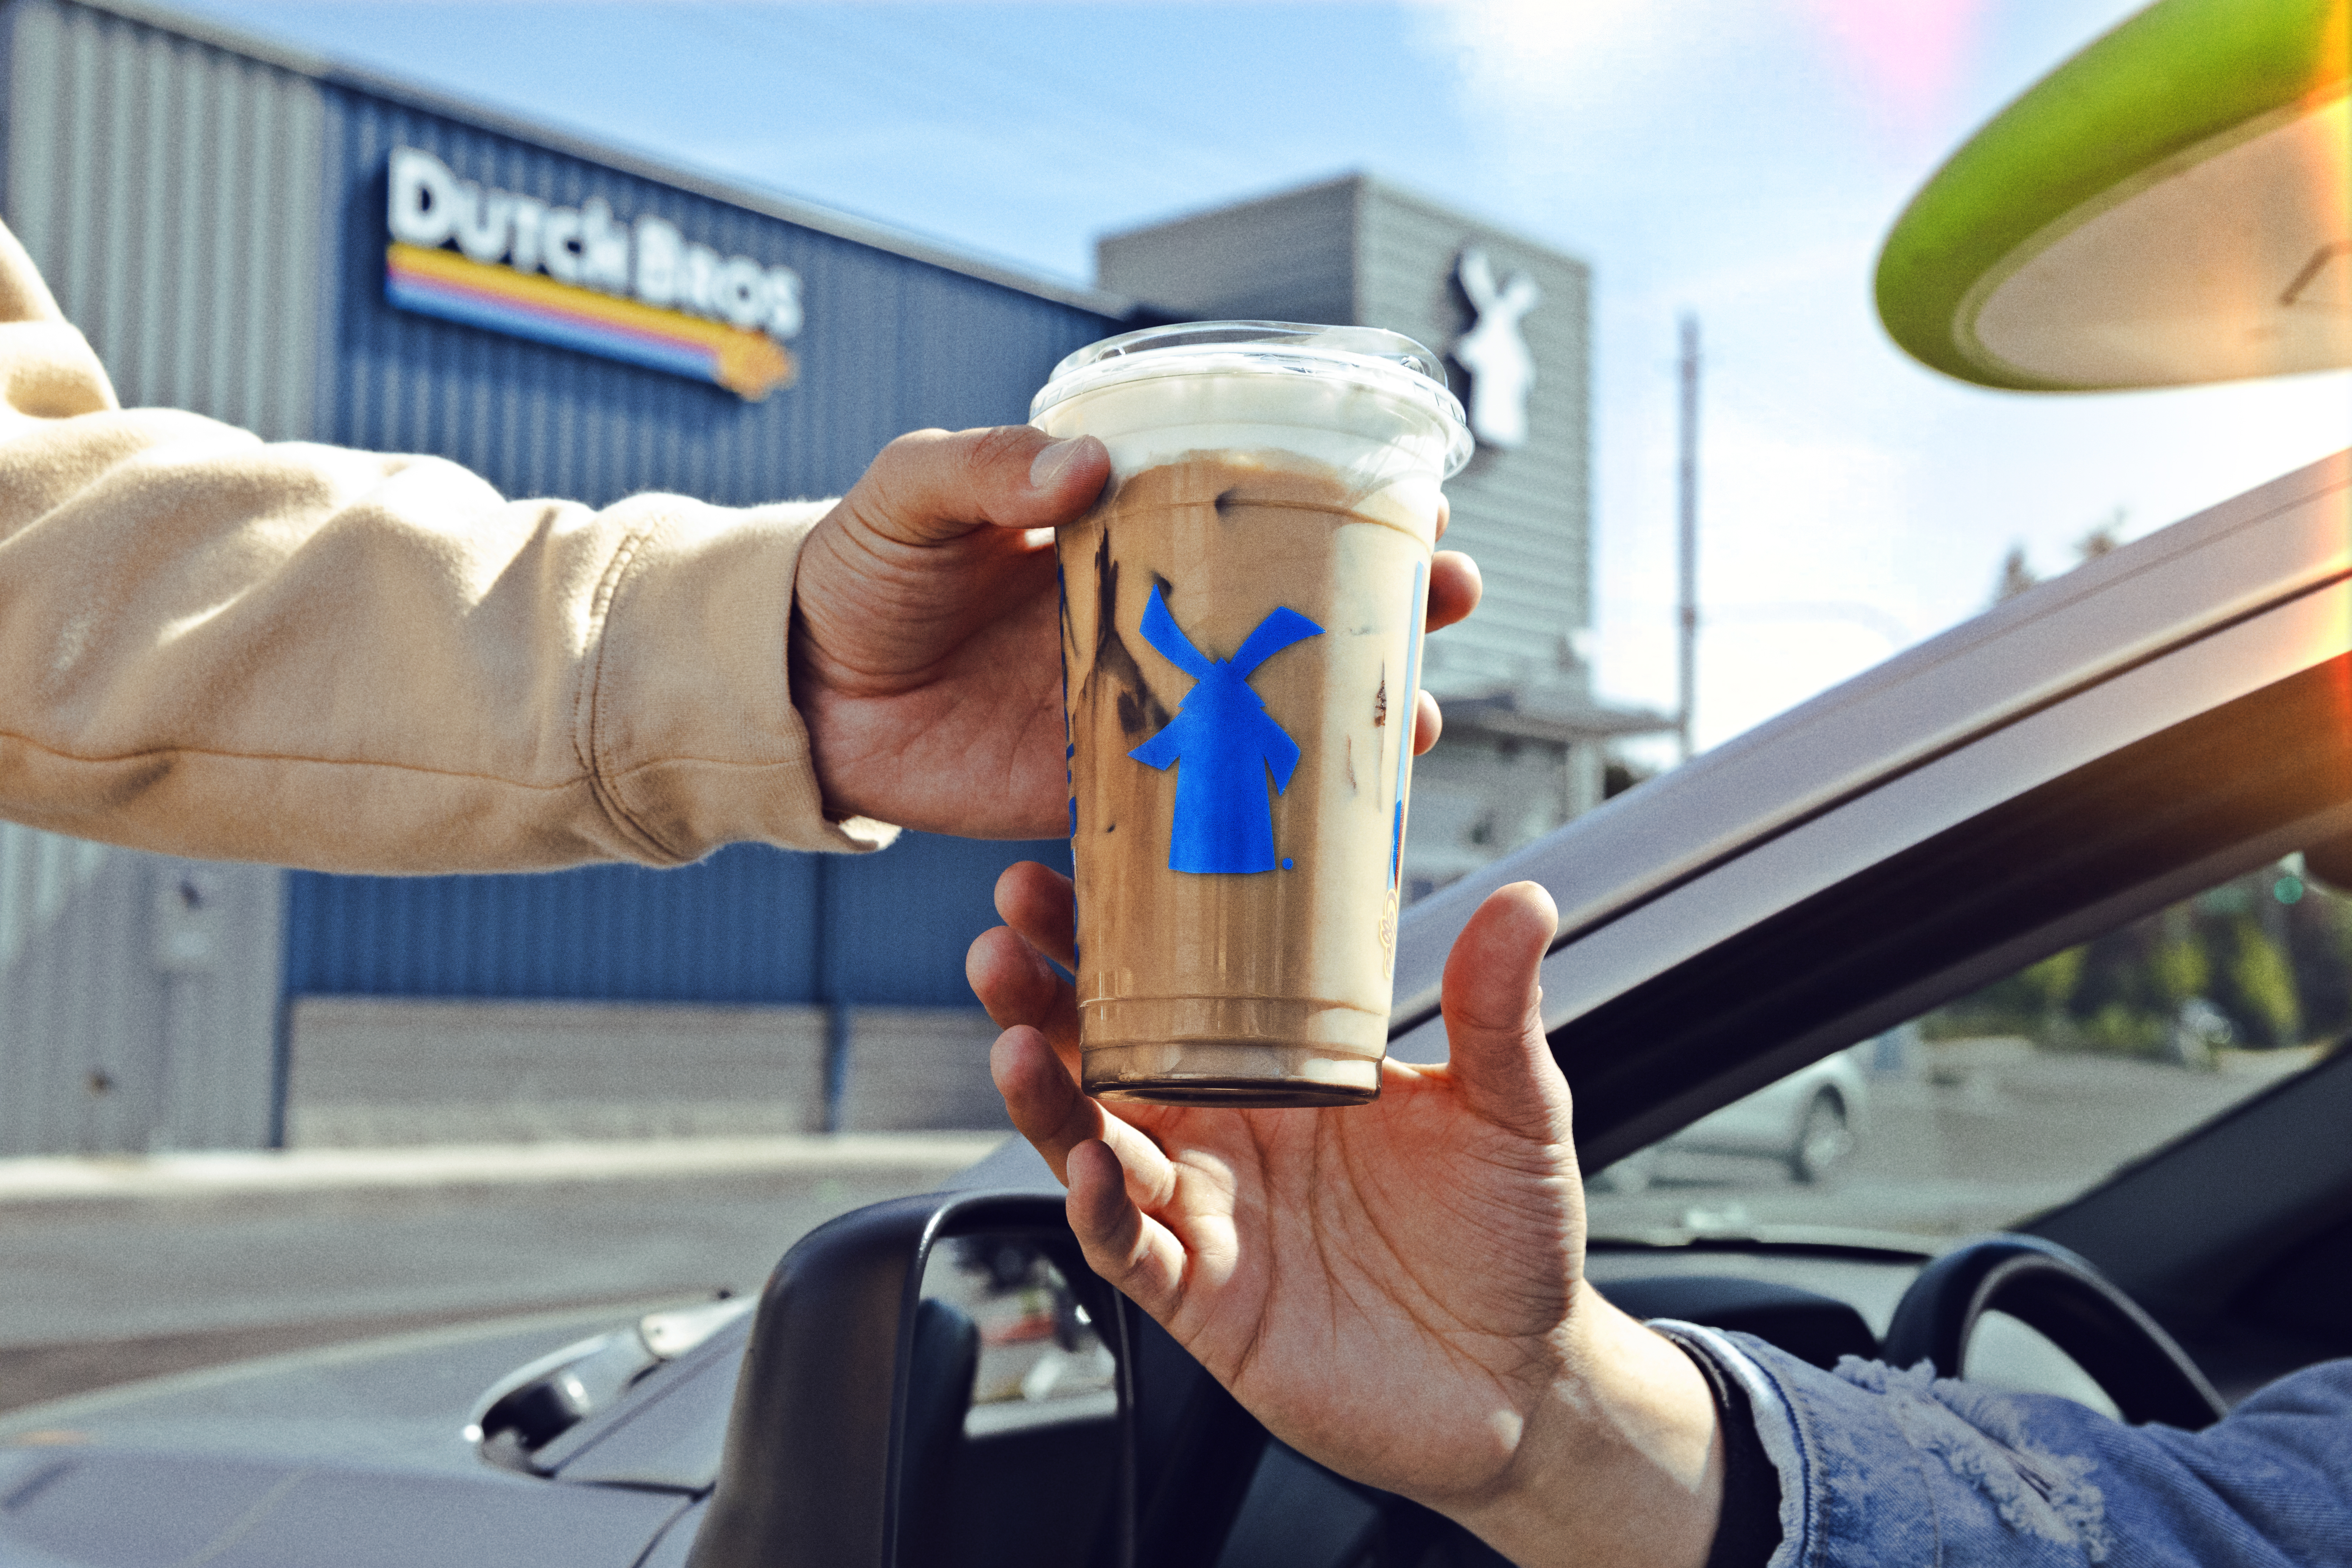 Dutch Bros retreats after post-IPO surge; CEO aims for 'disciplined growth'